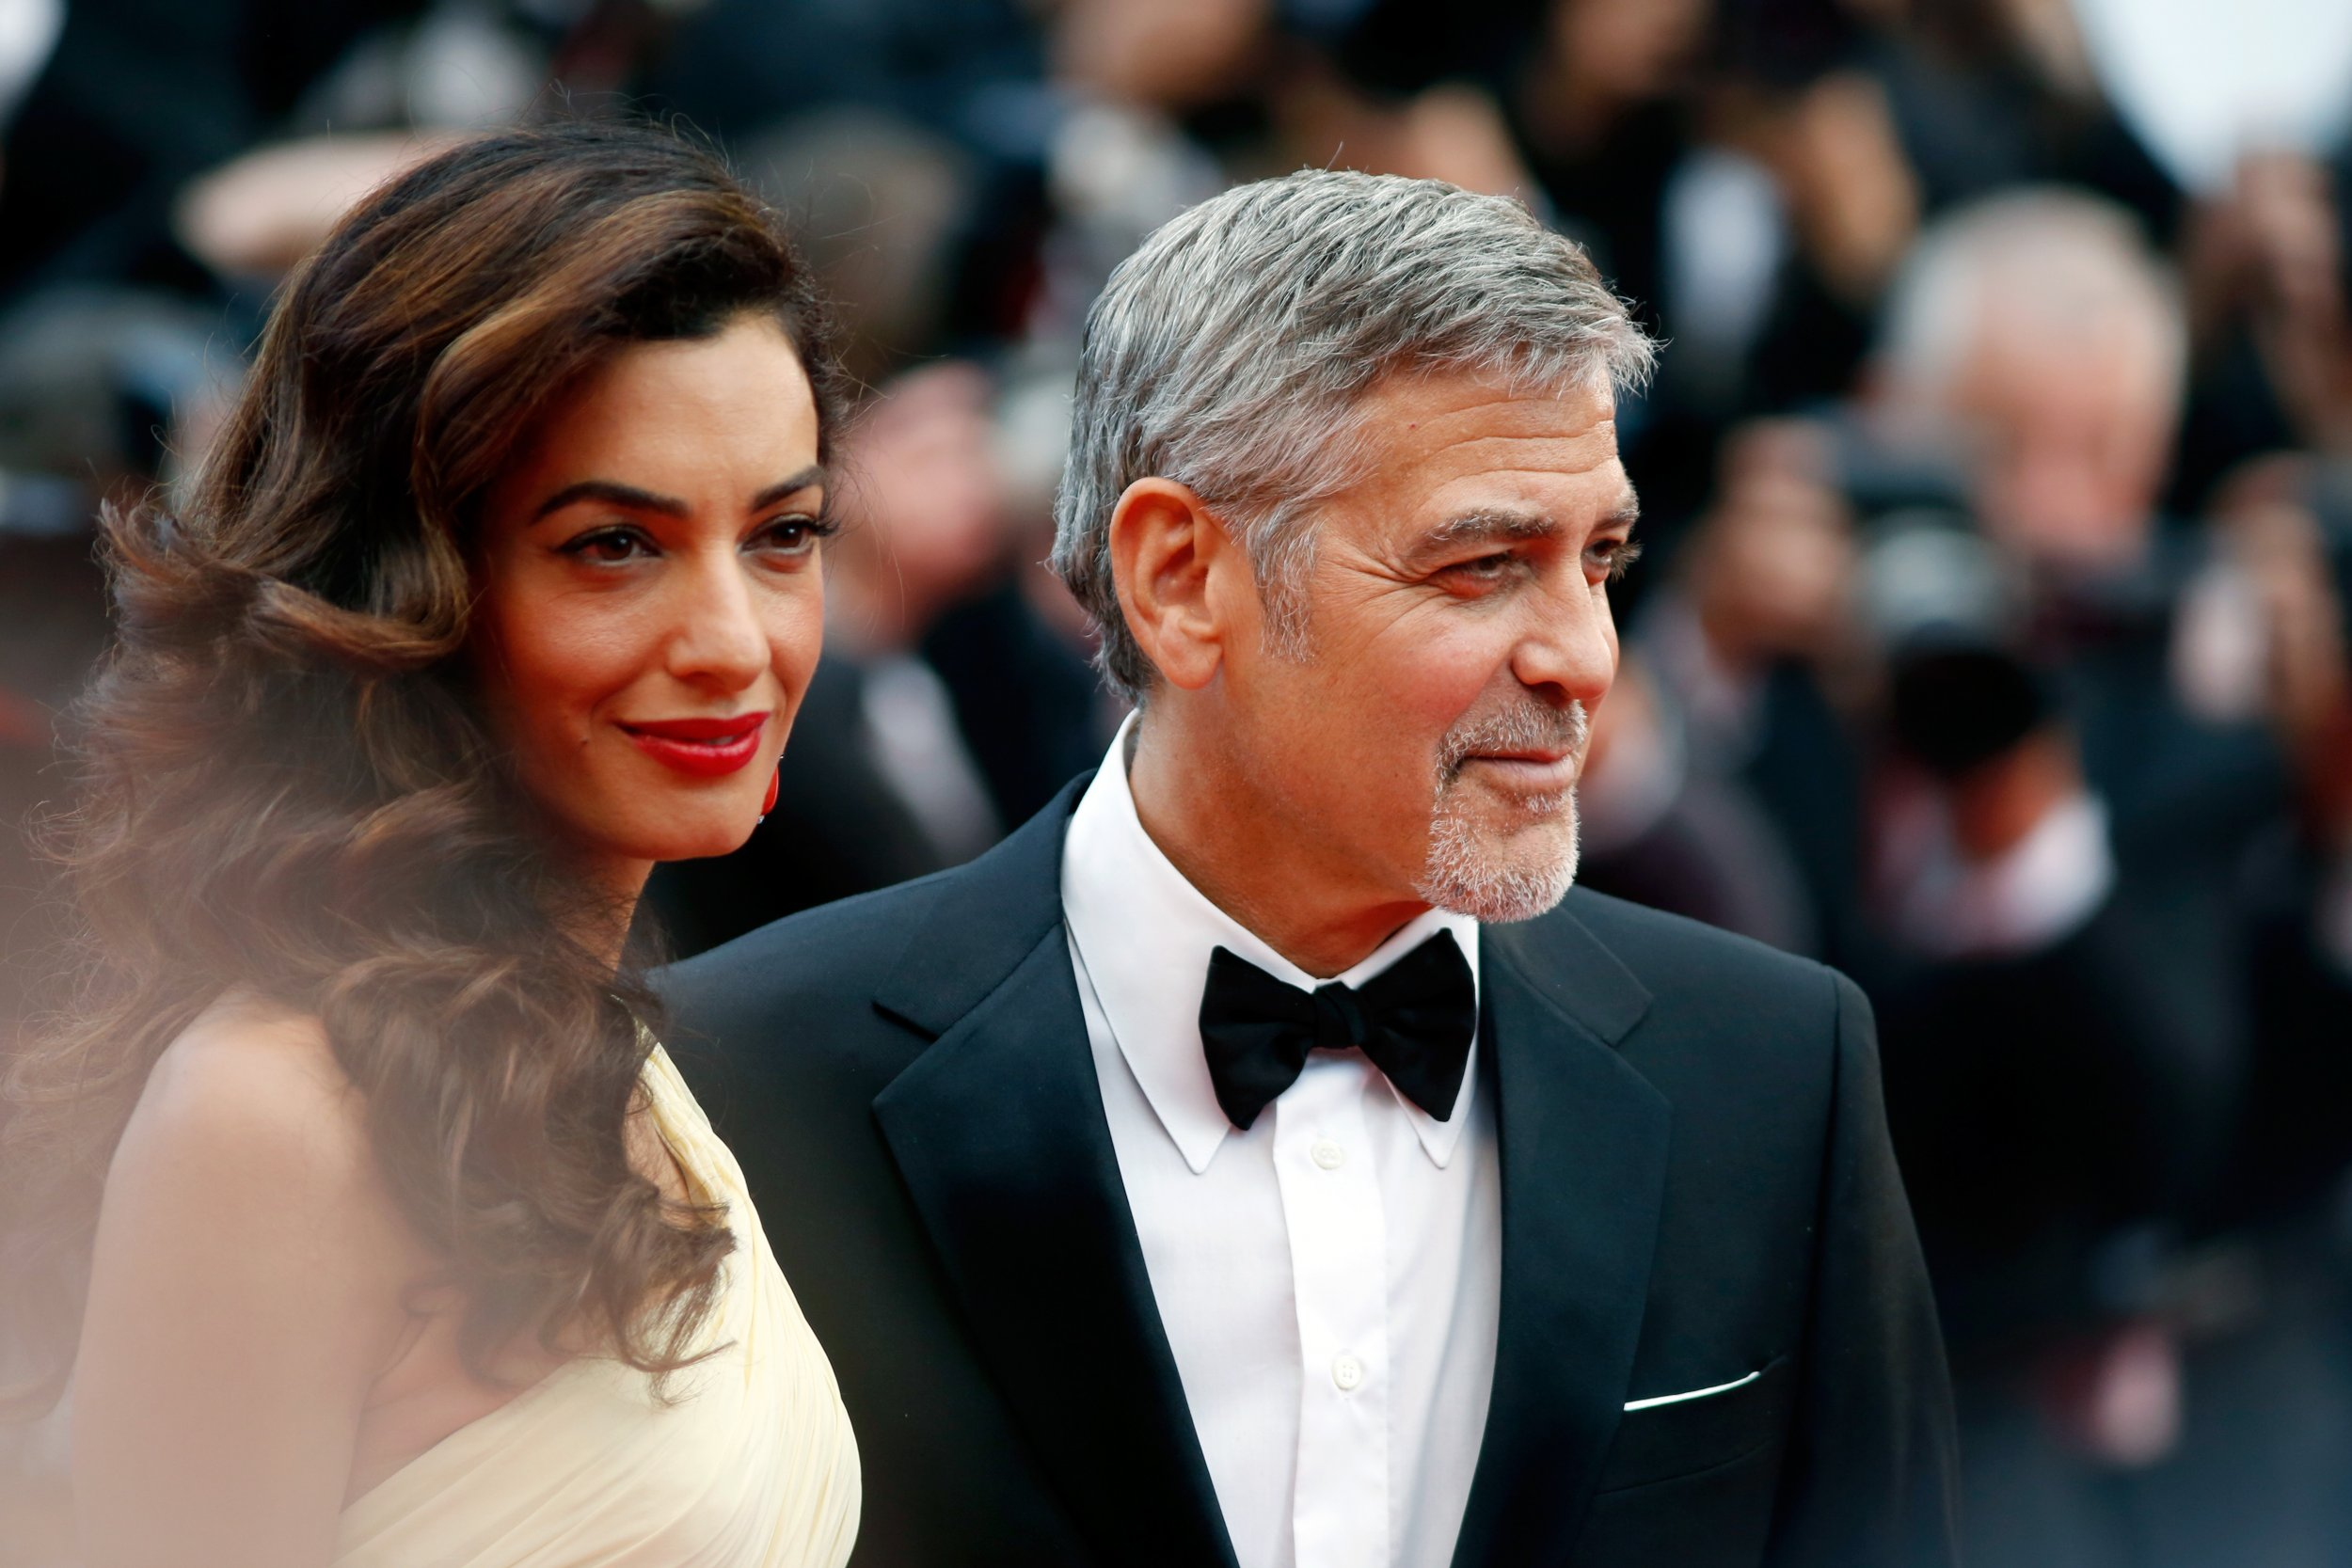 George and Amal Clooney's Staggering Net Worth Means New